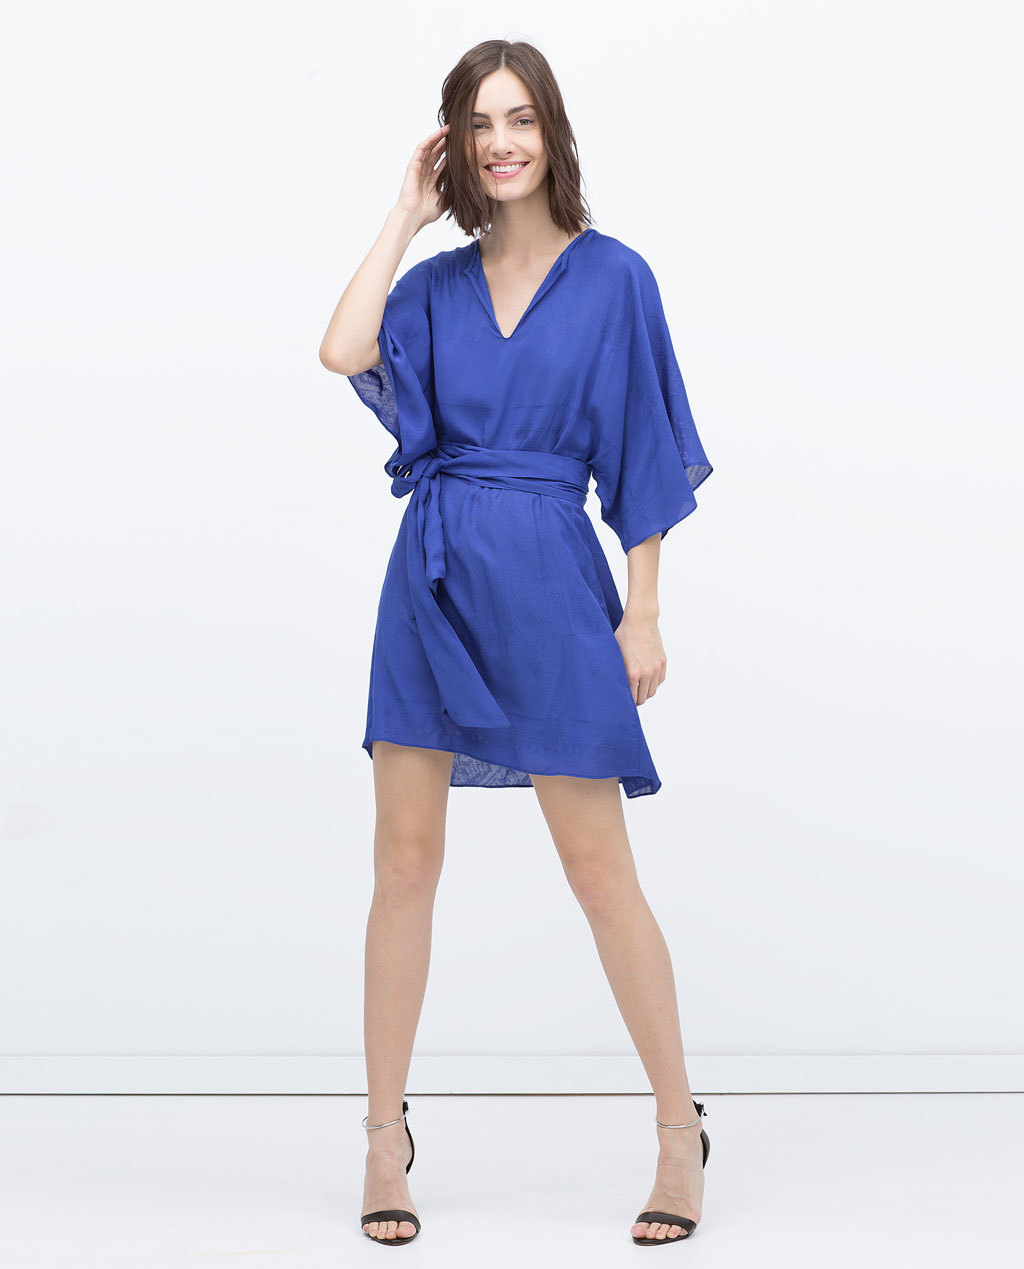 Jacquard Viscose Dress - length: mid thigh; neckline: low v-neck; sleeve style: angel/waterfall; fit: fitted at waist; pattern: plain; style: blouson; waist detail: belted waist/tie at waist/drawstring; predominant colour: royal blue; occasions: evening, occasion; fibres: viscose/rayon - 100%; hip detail: soft pleats at hip/draping at hip/flared at hip; sleeve length: 3/4 length; pattern type: fabric; texture group: brocade/jacquard; season: s/s 2015